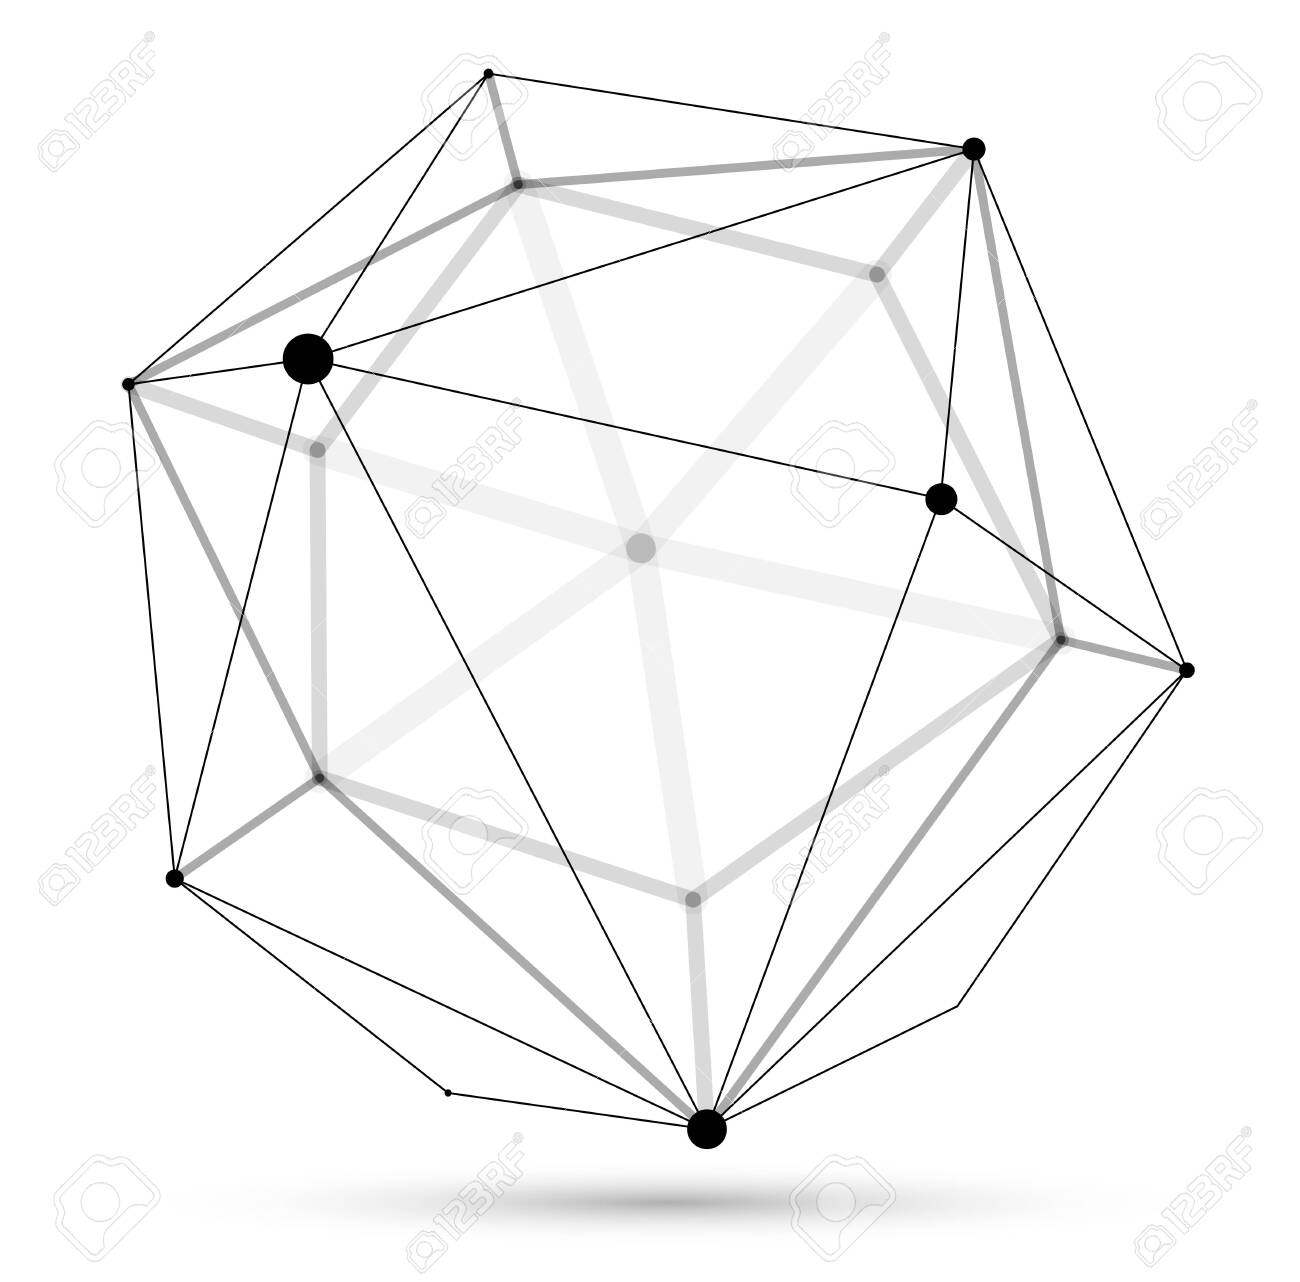 Dimensional lattice sphere vector abstraction, 3D polygonal design abstract shape isolated over white, science digital dynamic connections with lines and dots with perspective. - 149027378